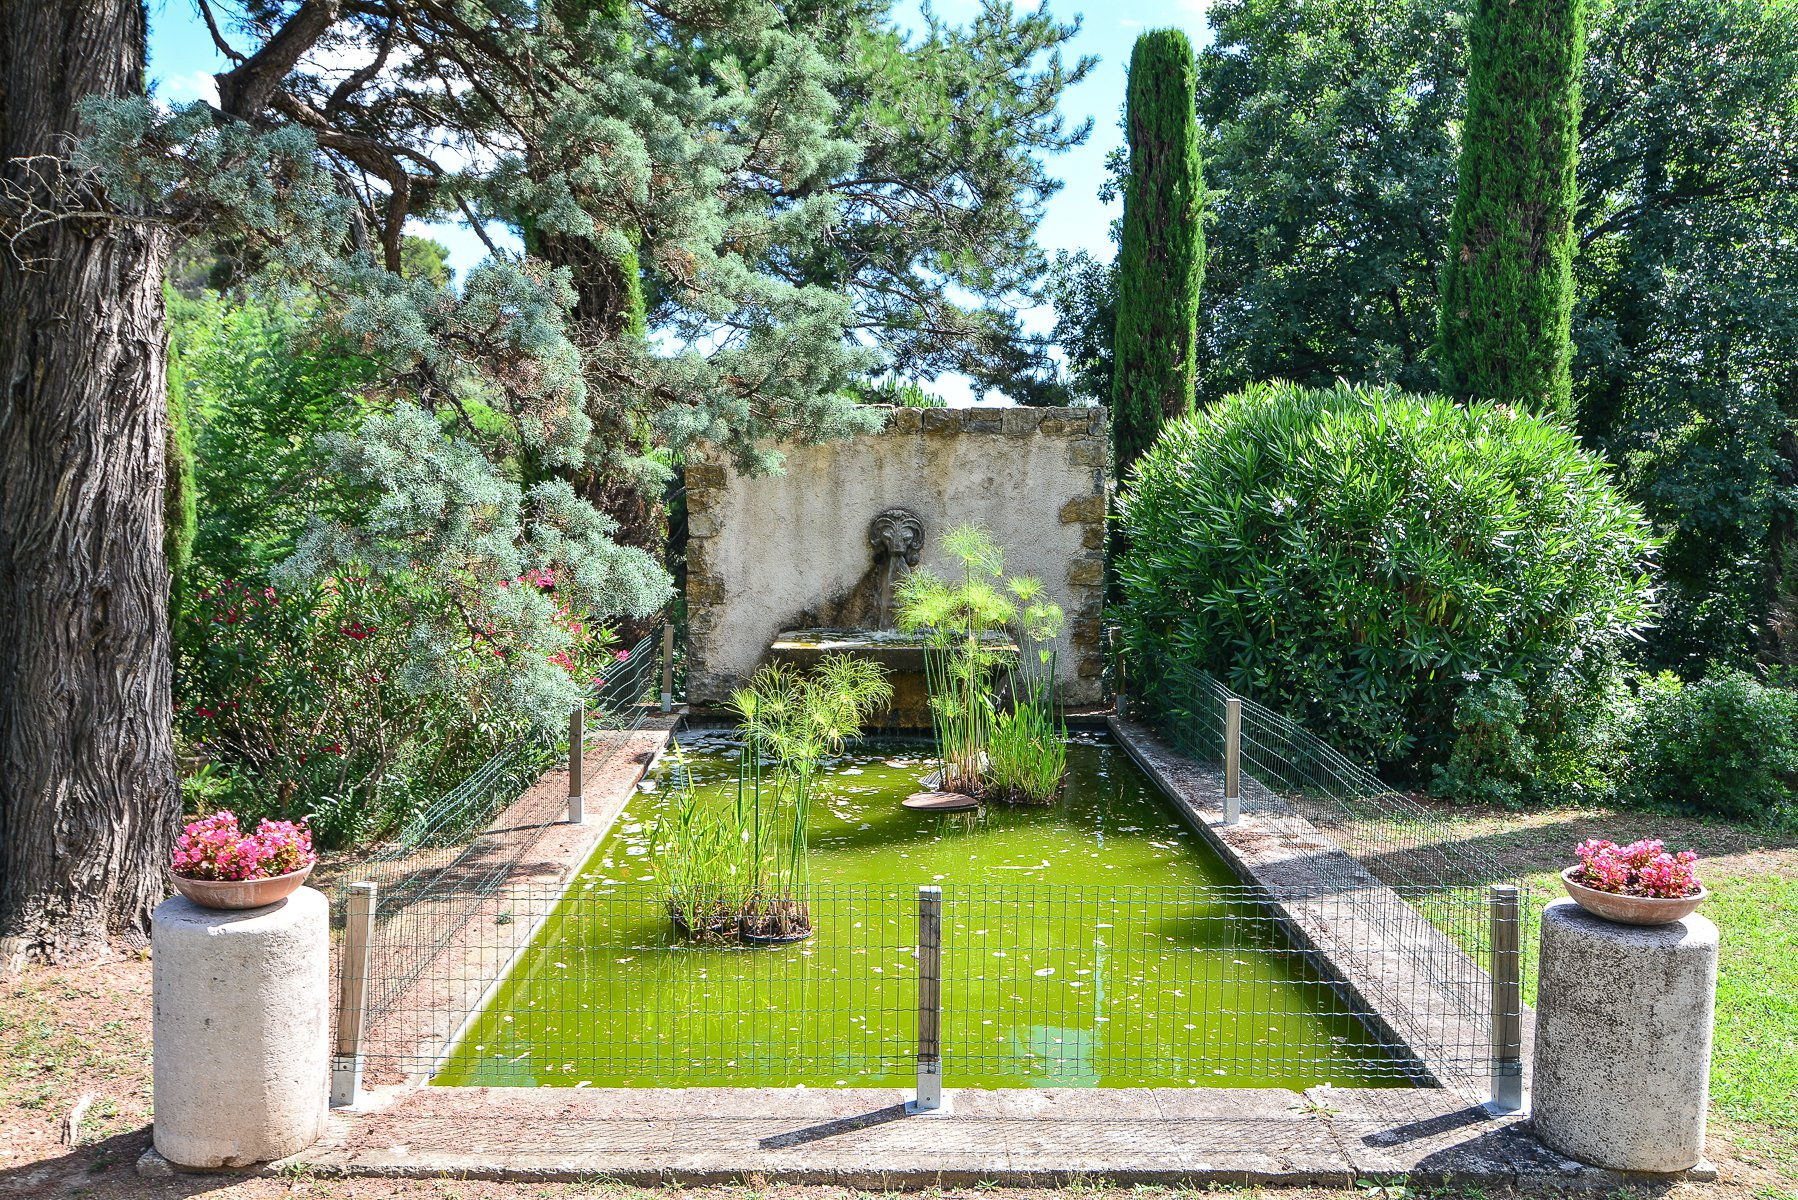 Natural stone bastide in Mougins